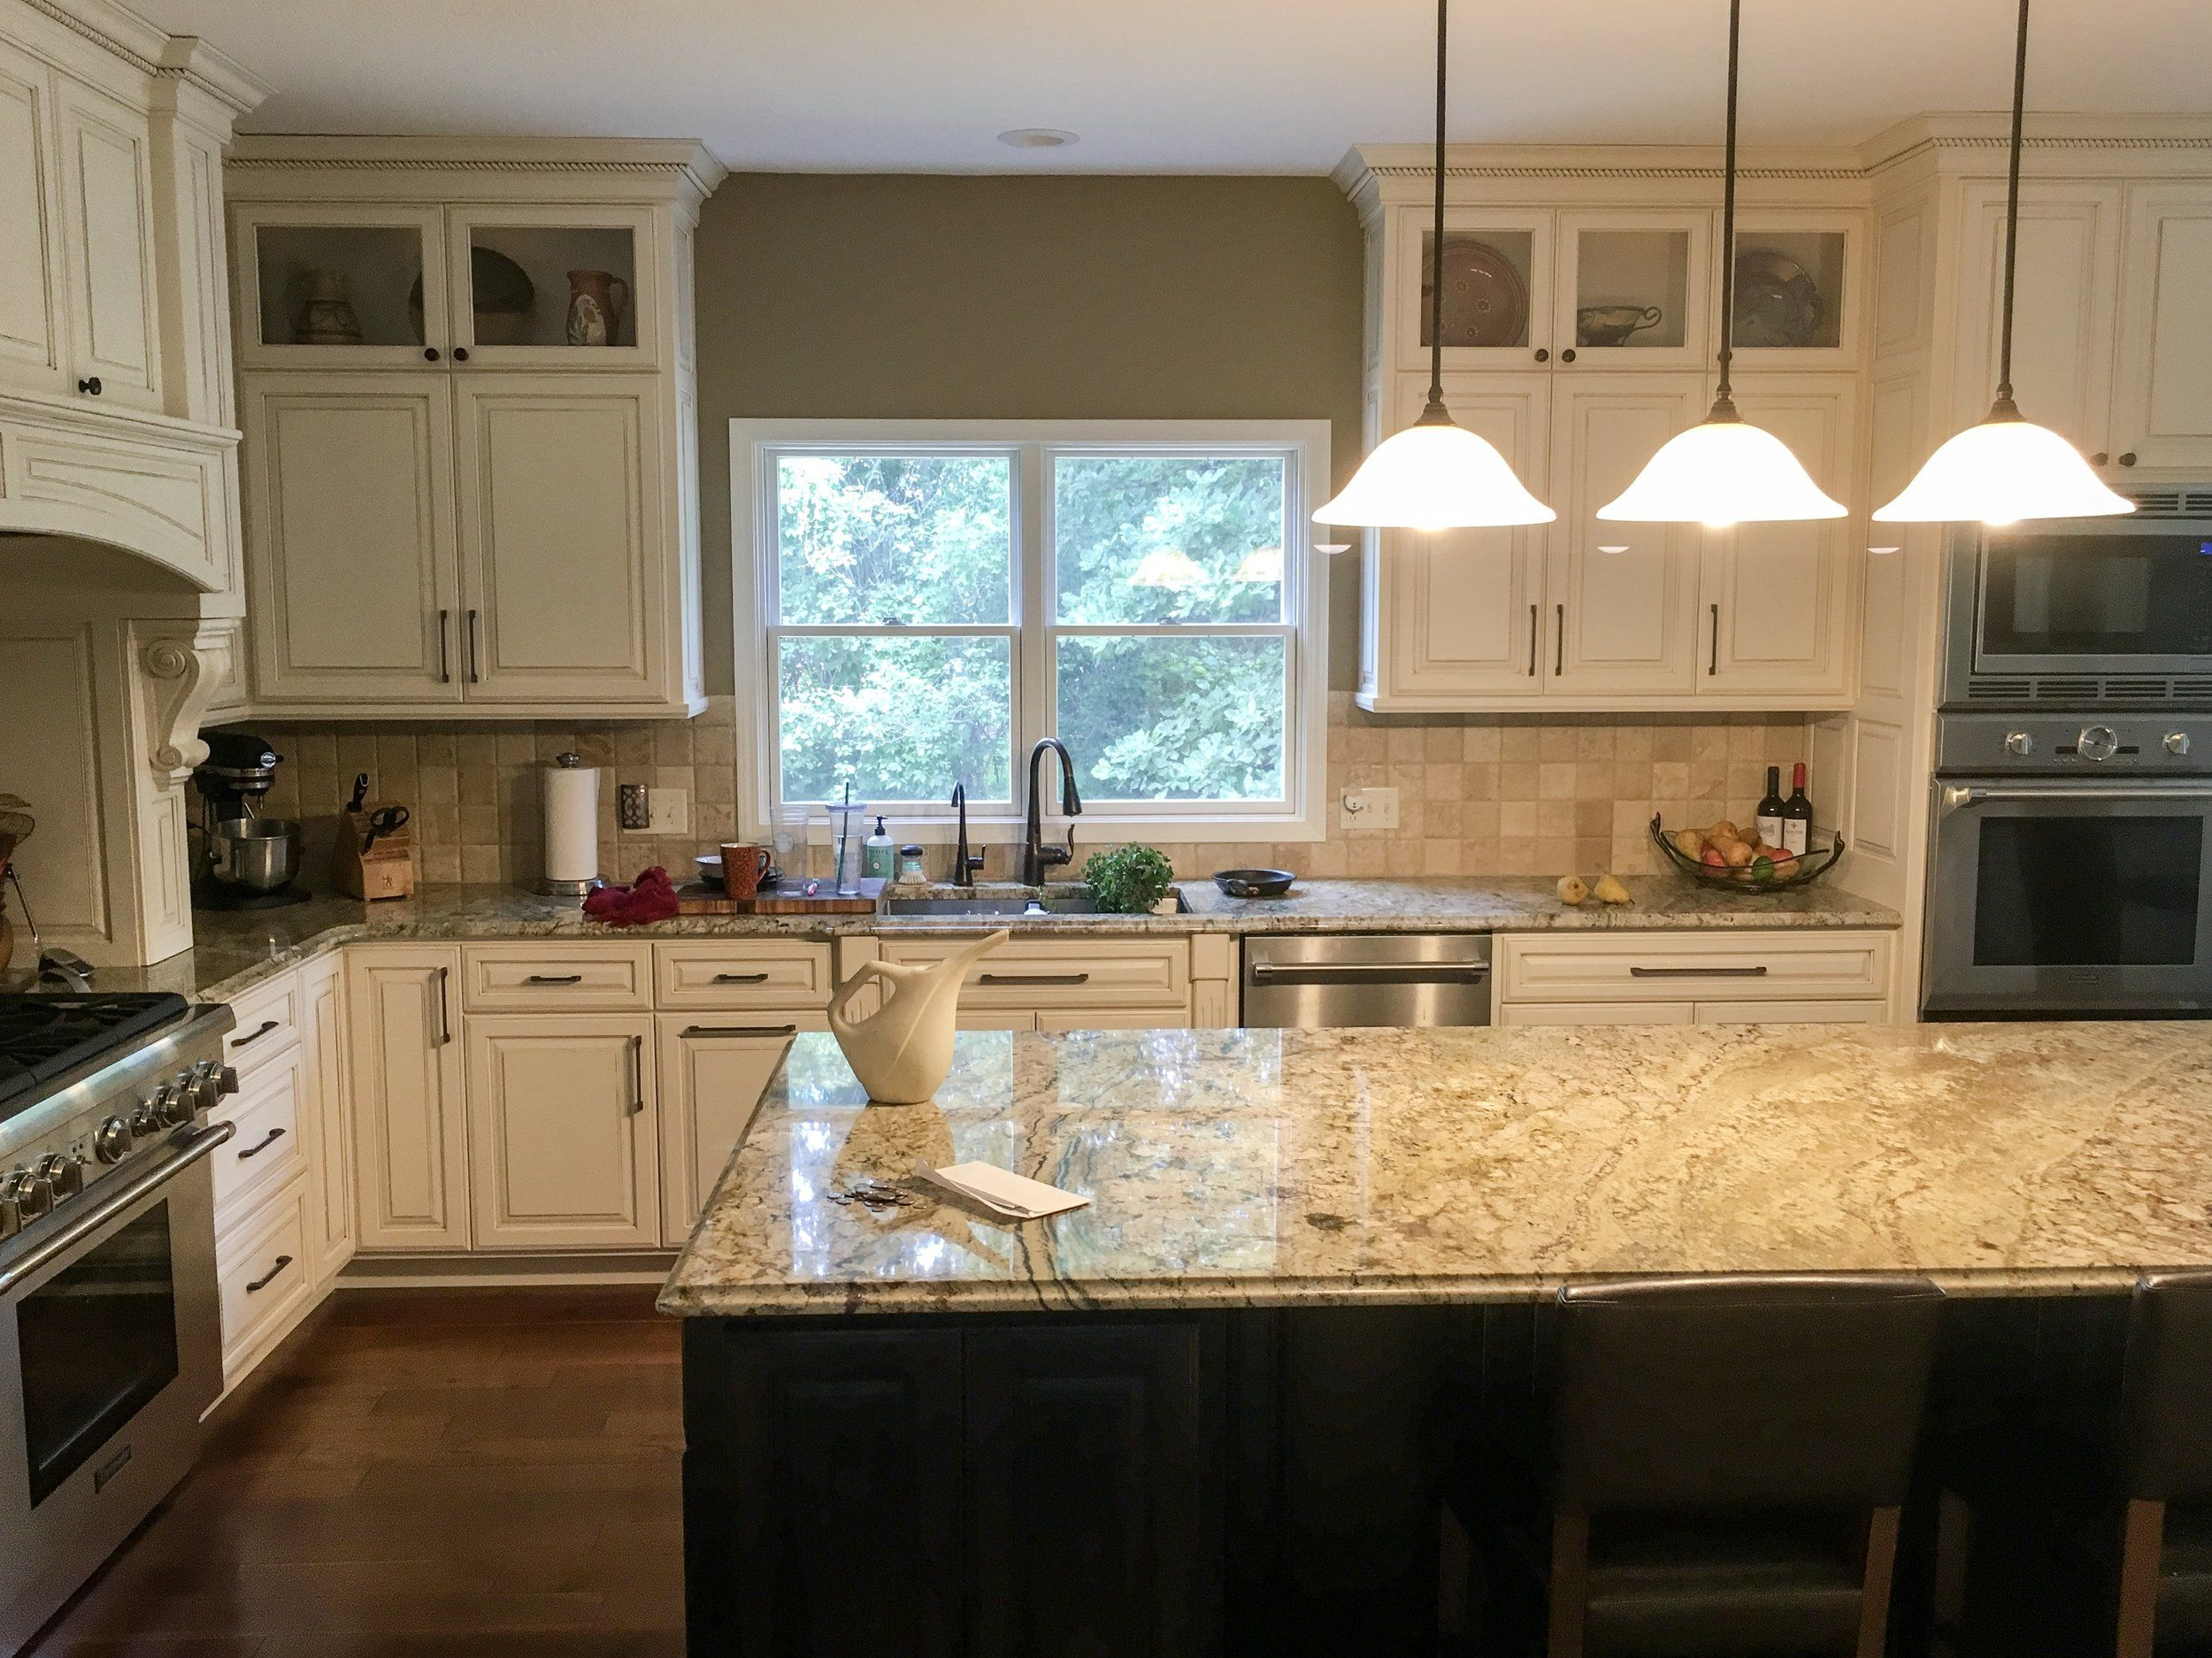 Double ovens and a full rangethis kitchen is perfectly equipped for